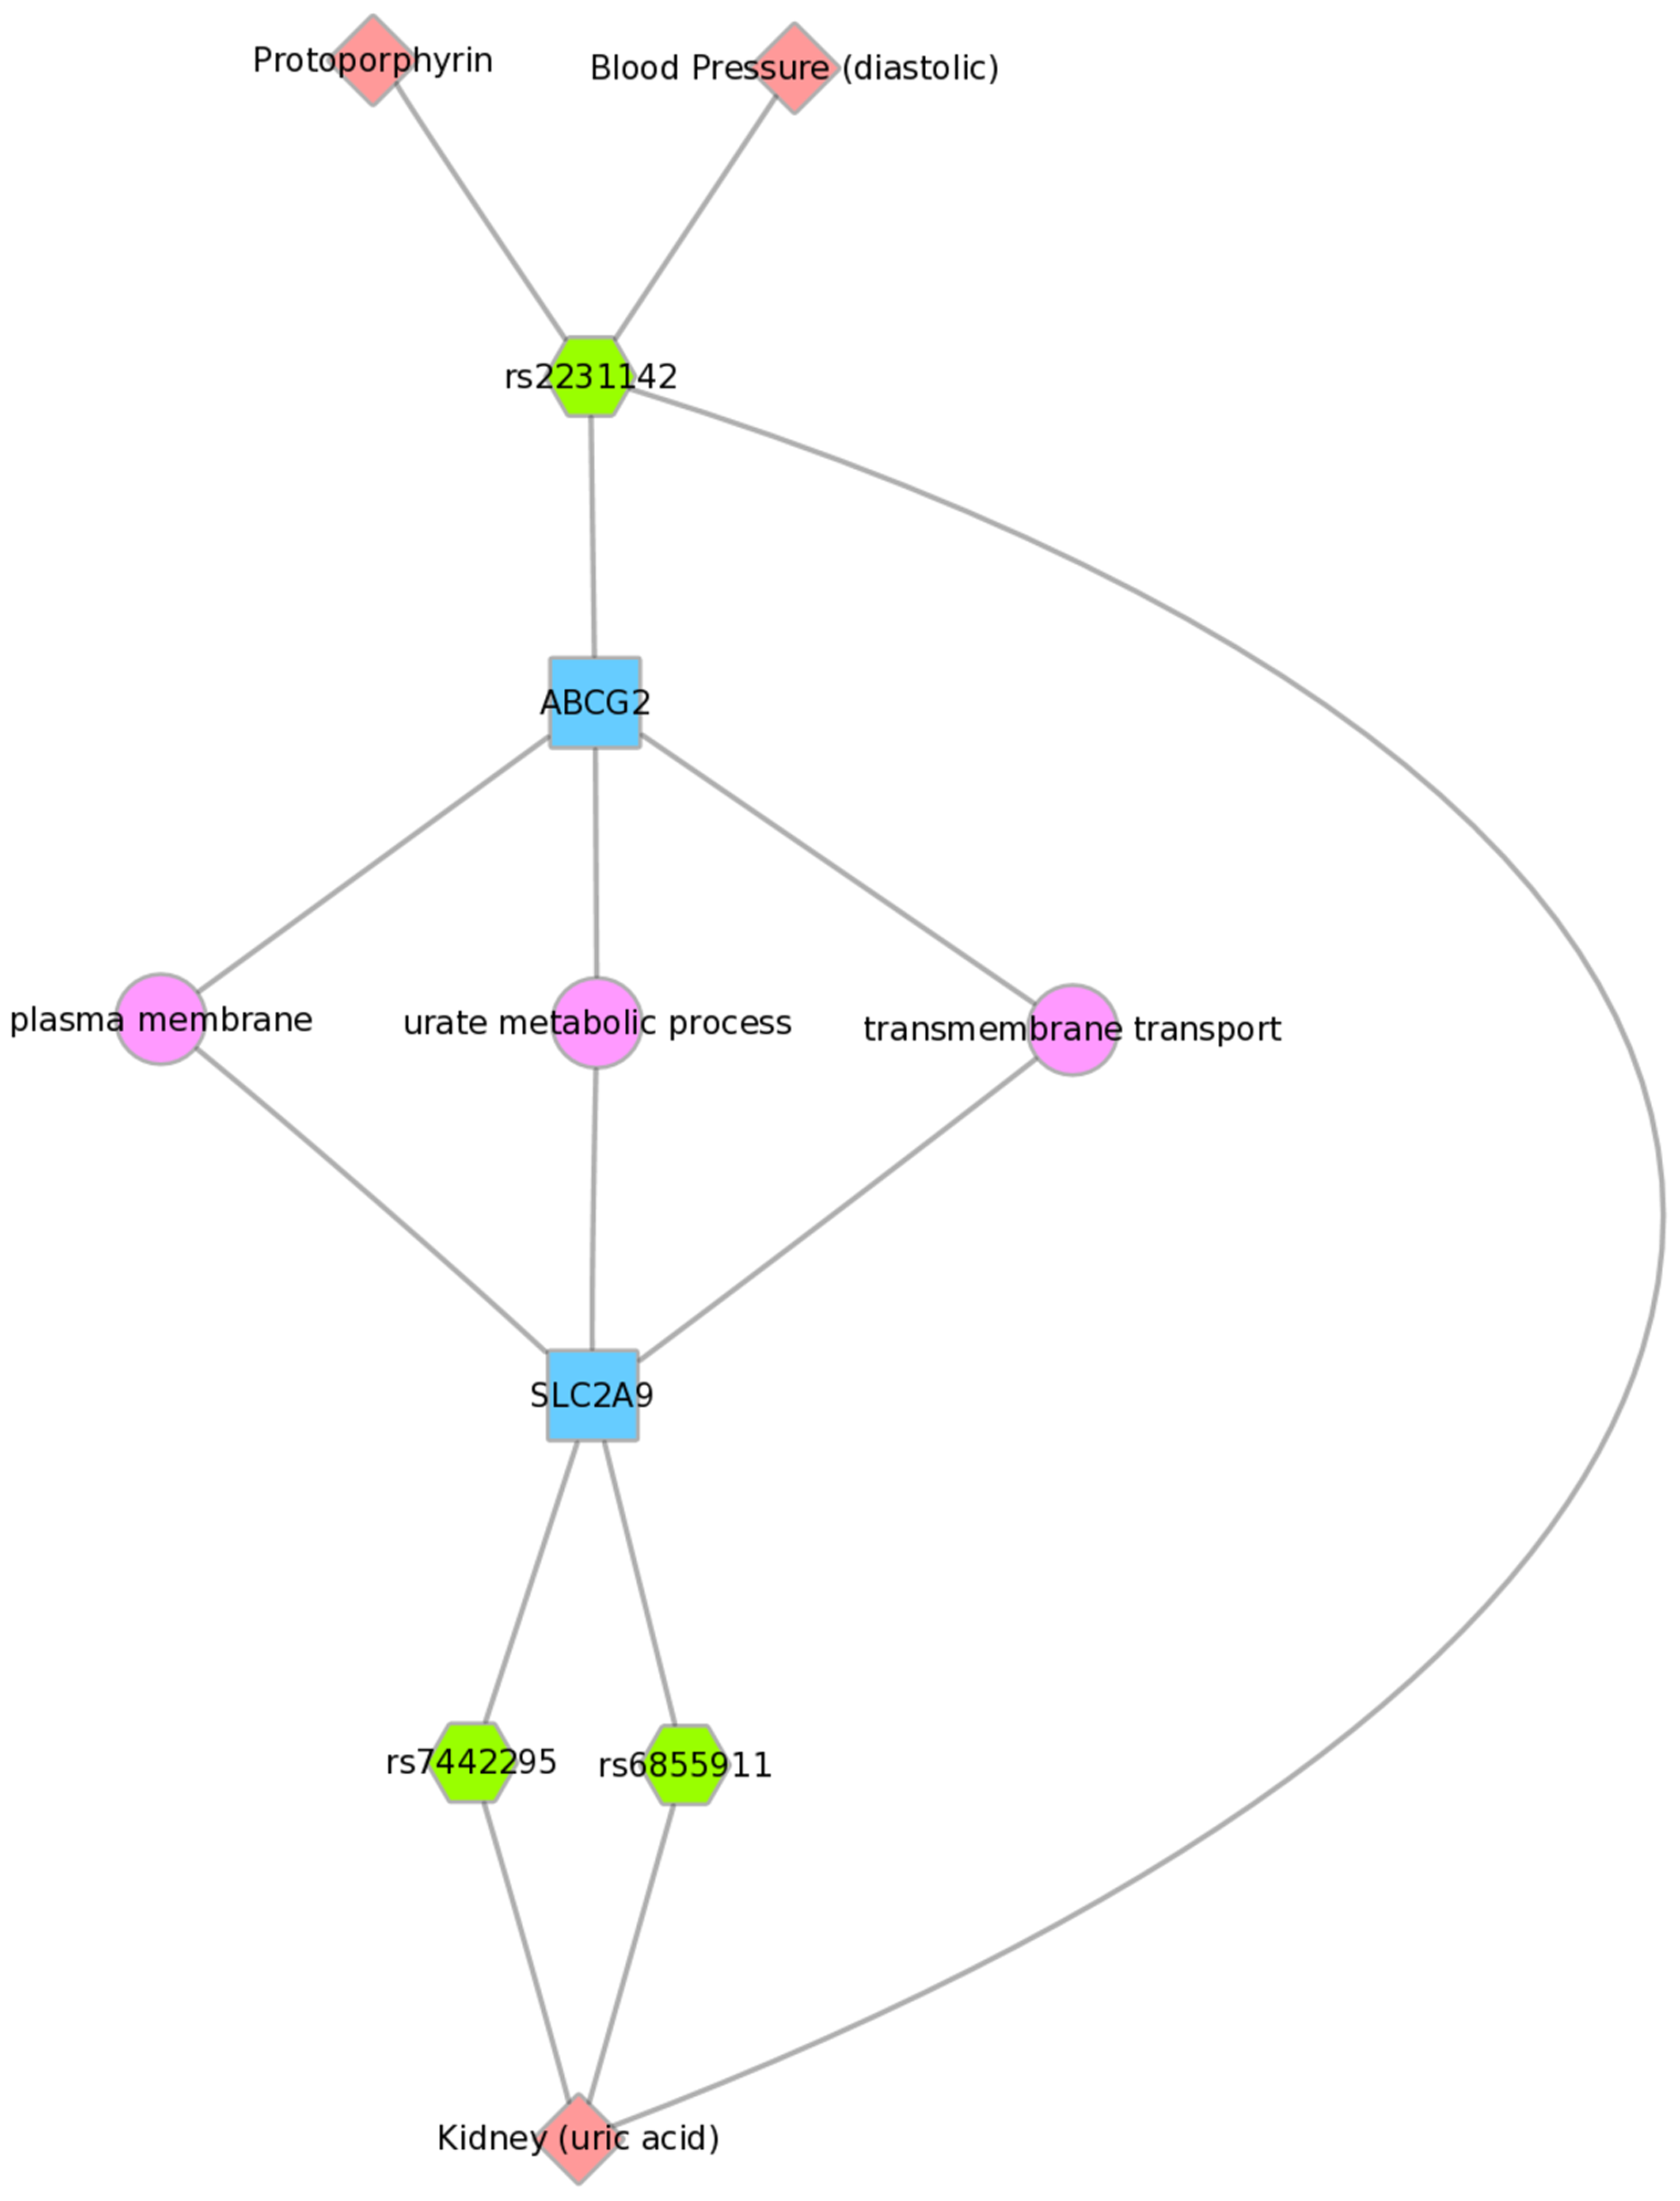 Using PheWAS results, Biofilter, and Cytoscape to explore gene-gene connections with GO biological processes.